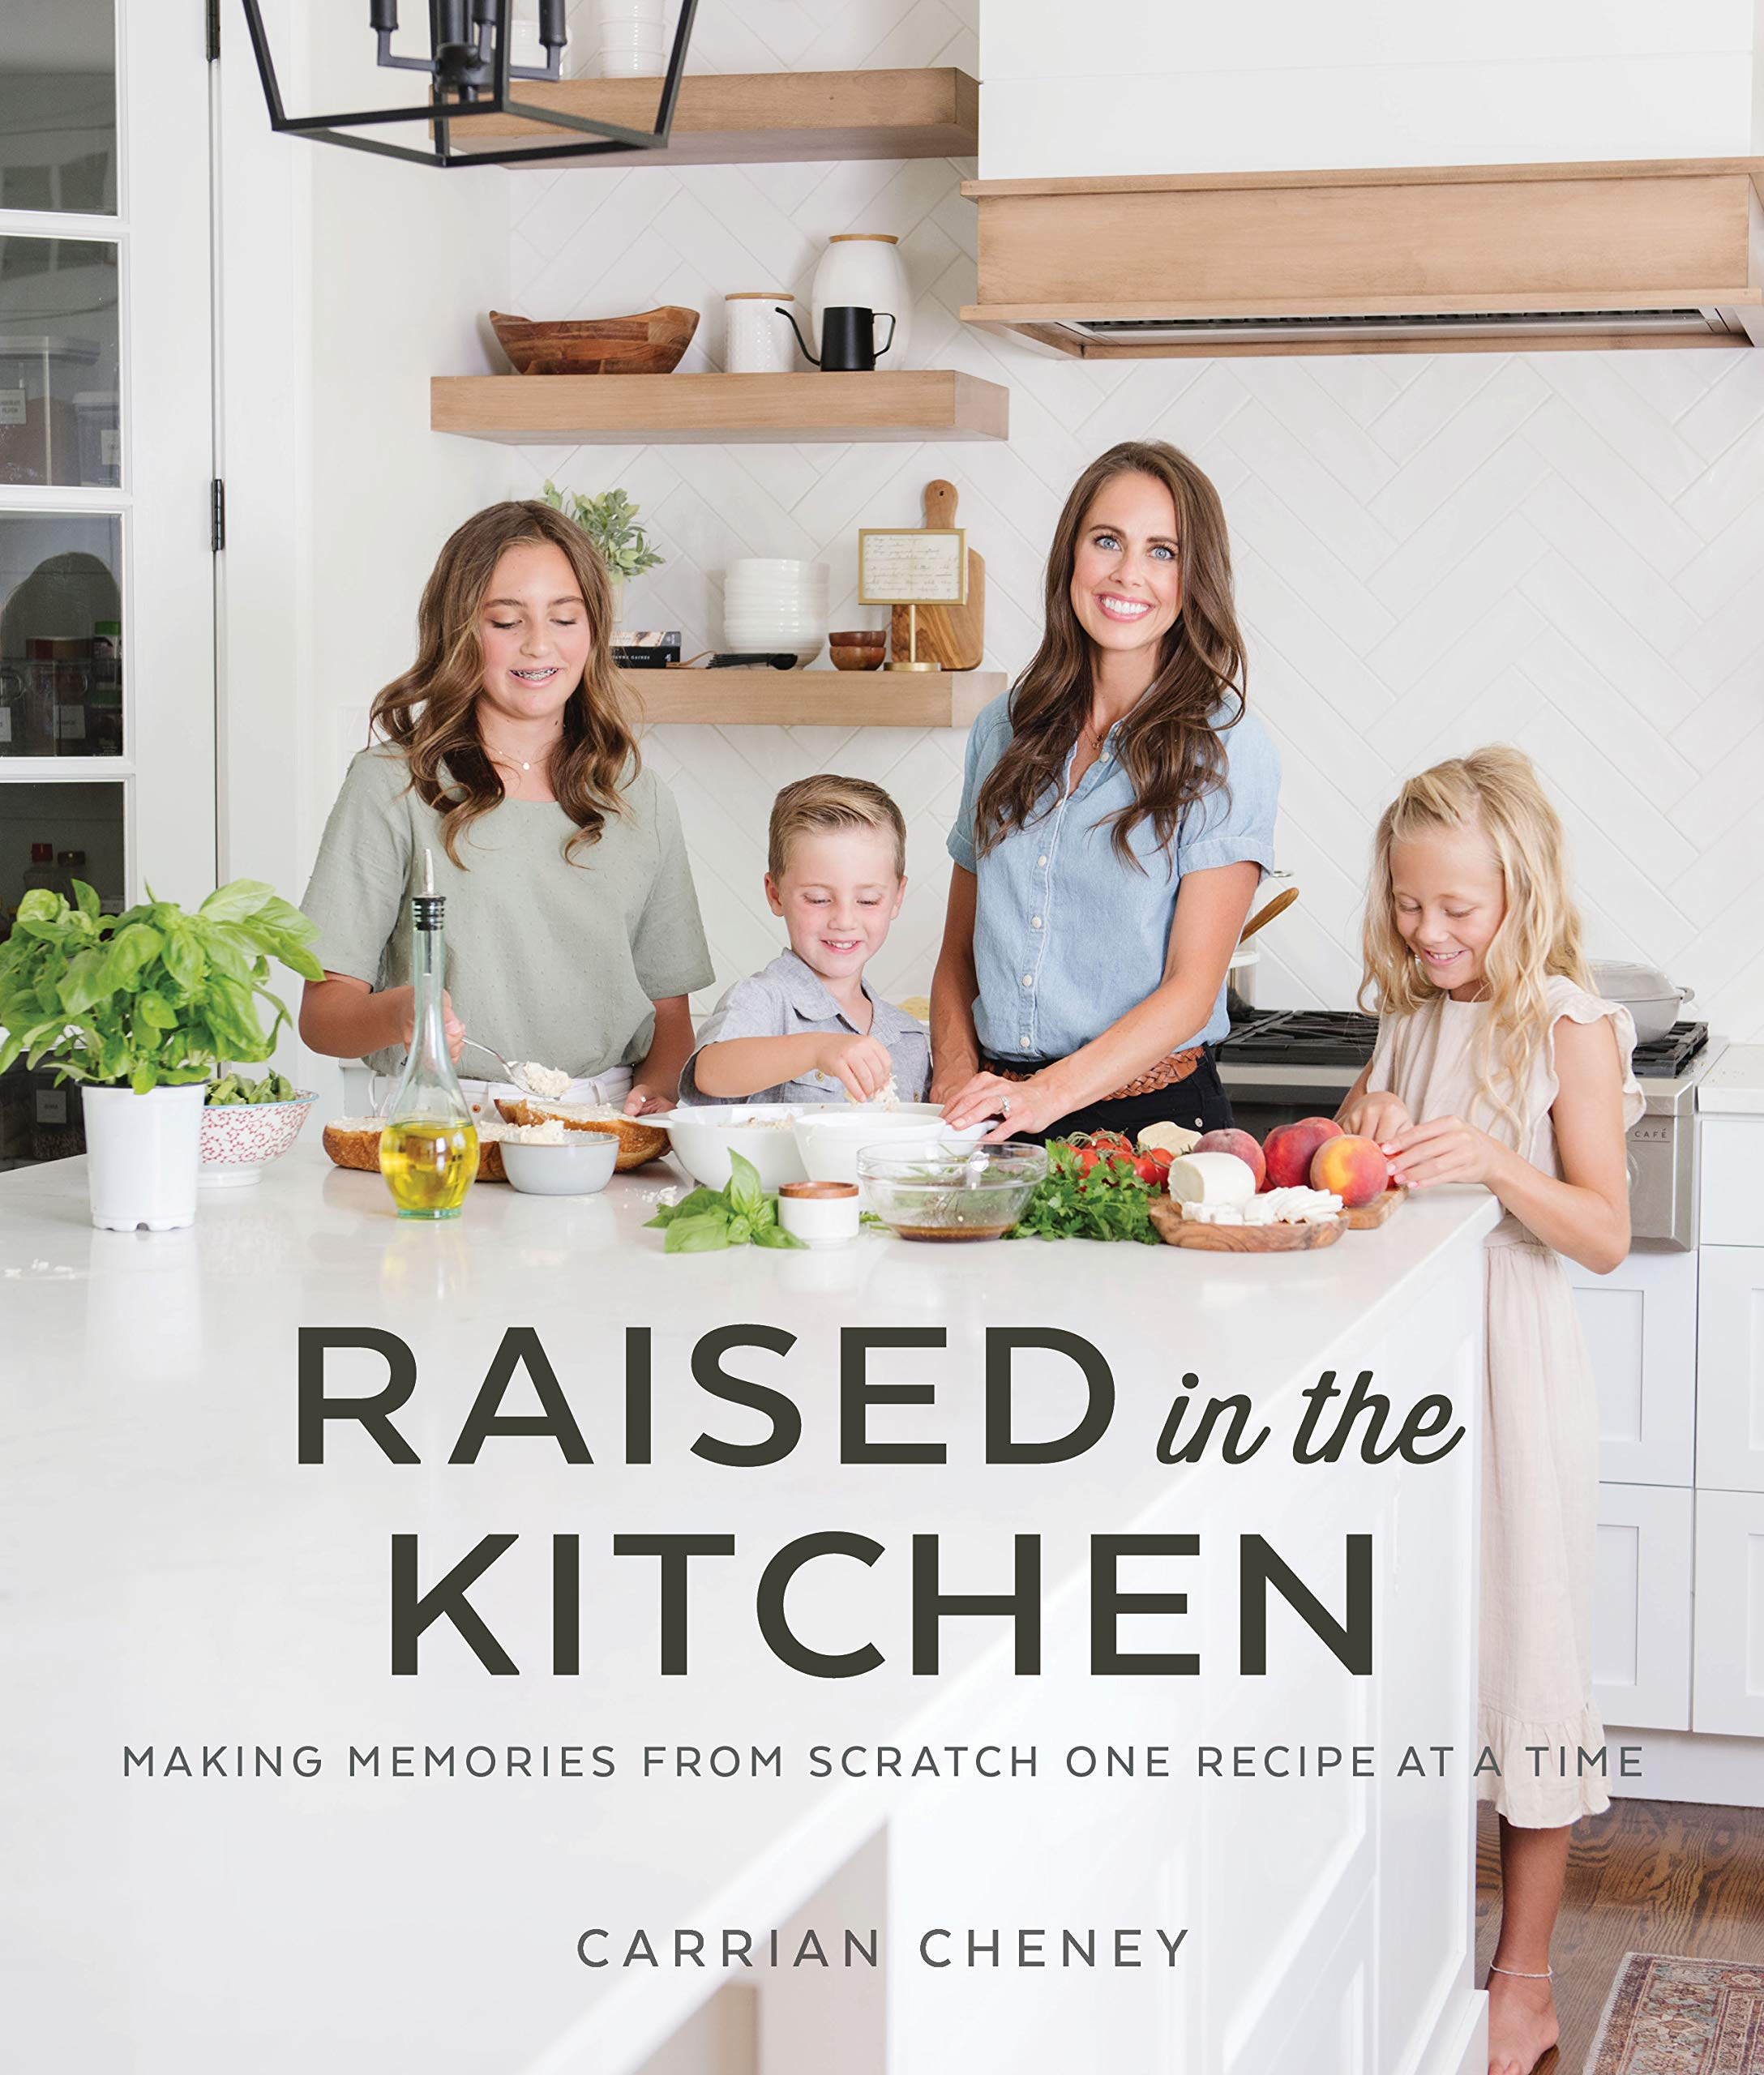 Amazon Com Raised In The Kitchen Making Memories From Scratch One Recipe At A Time 9781629728452 Carrian Cheney Books